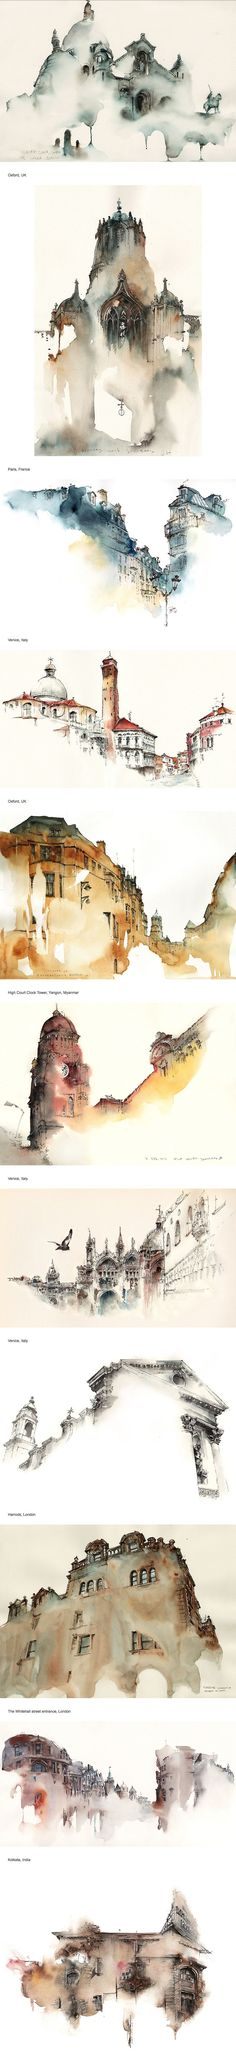 Elusive Architecture in Watercolors of Korean Artist Sunga Park WOW NICE WORK. Elusive Architecture in Watercolors of Korean Artist Sunga Park Watercolor Landscape, Watercolor Paintings, Watercolors, Watercolor Sketch, Art Et Architecture, Watercolor Architecture, Illustration Art, Illustrations, Art Graphique